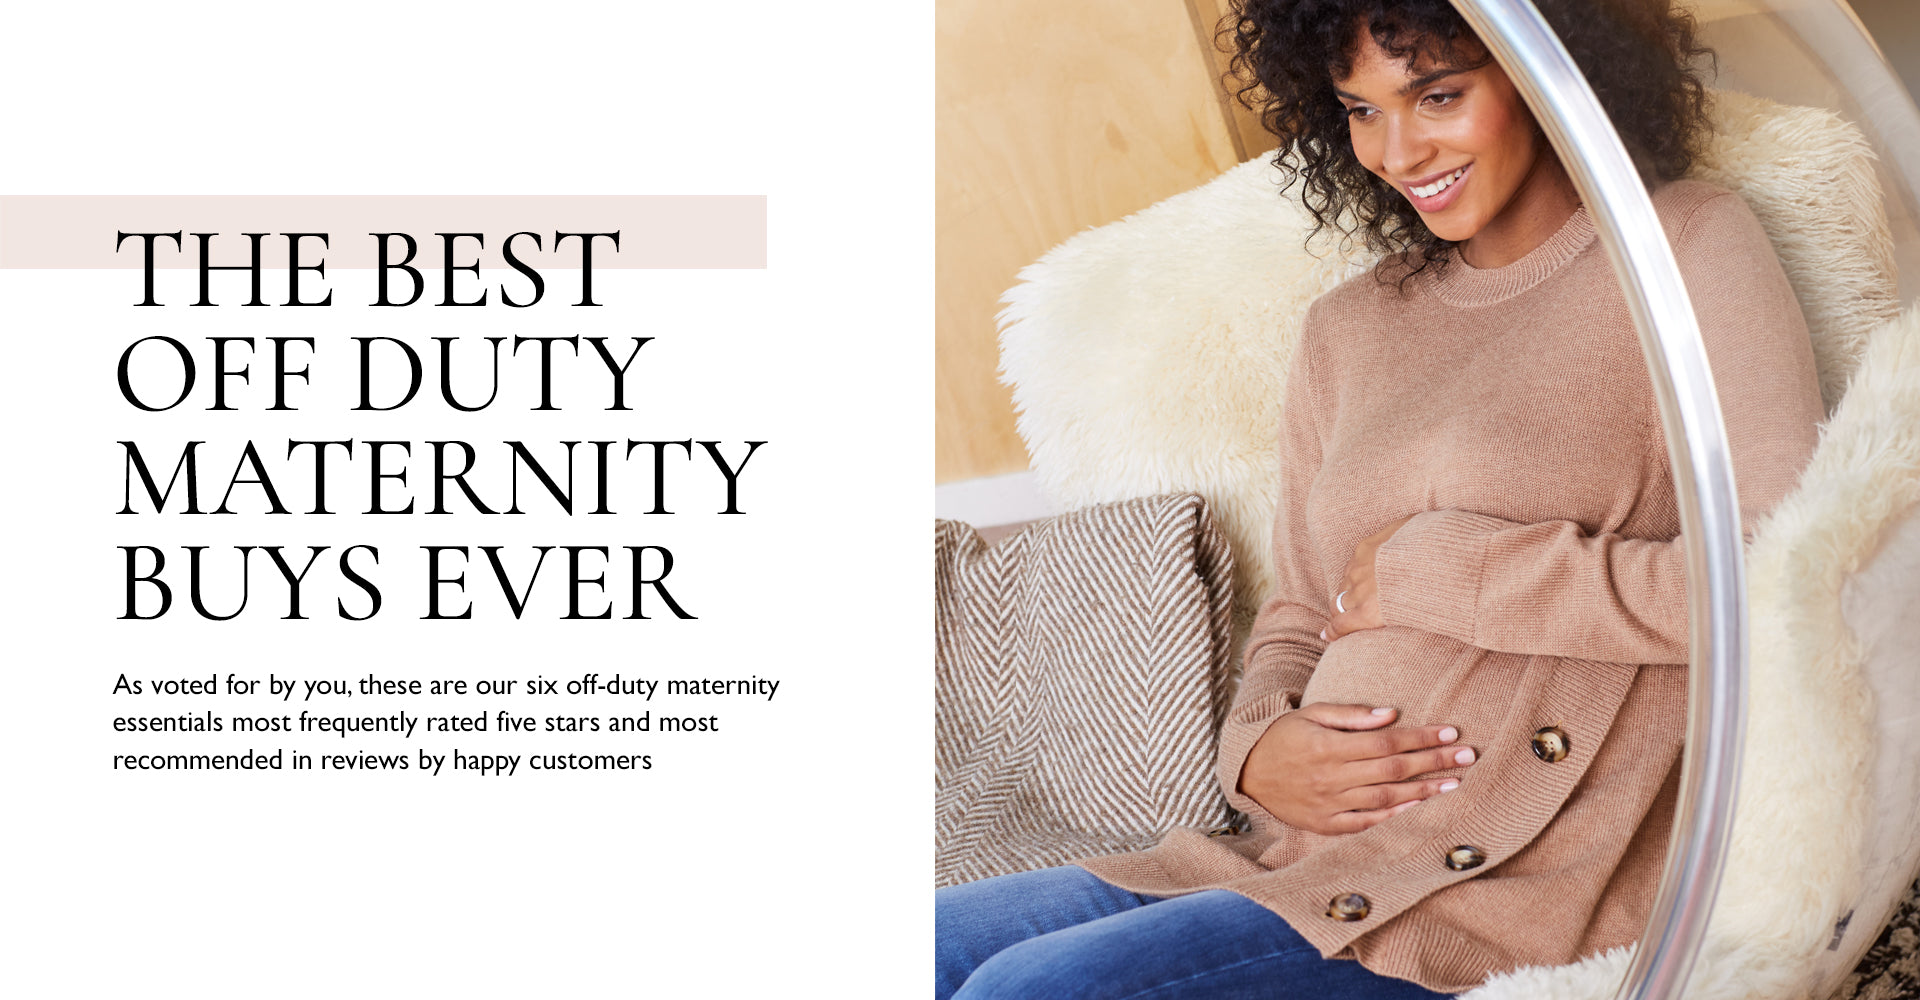 The best off duty maternity buys ever